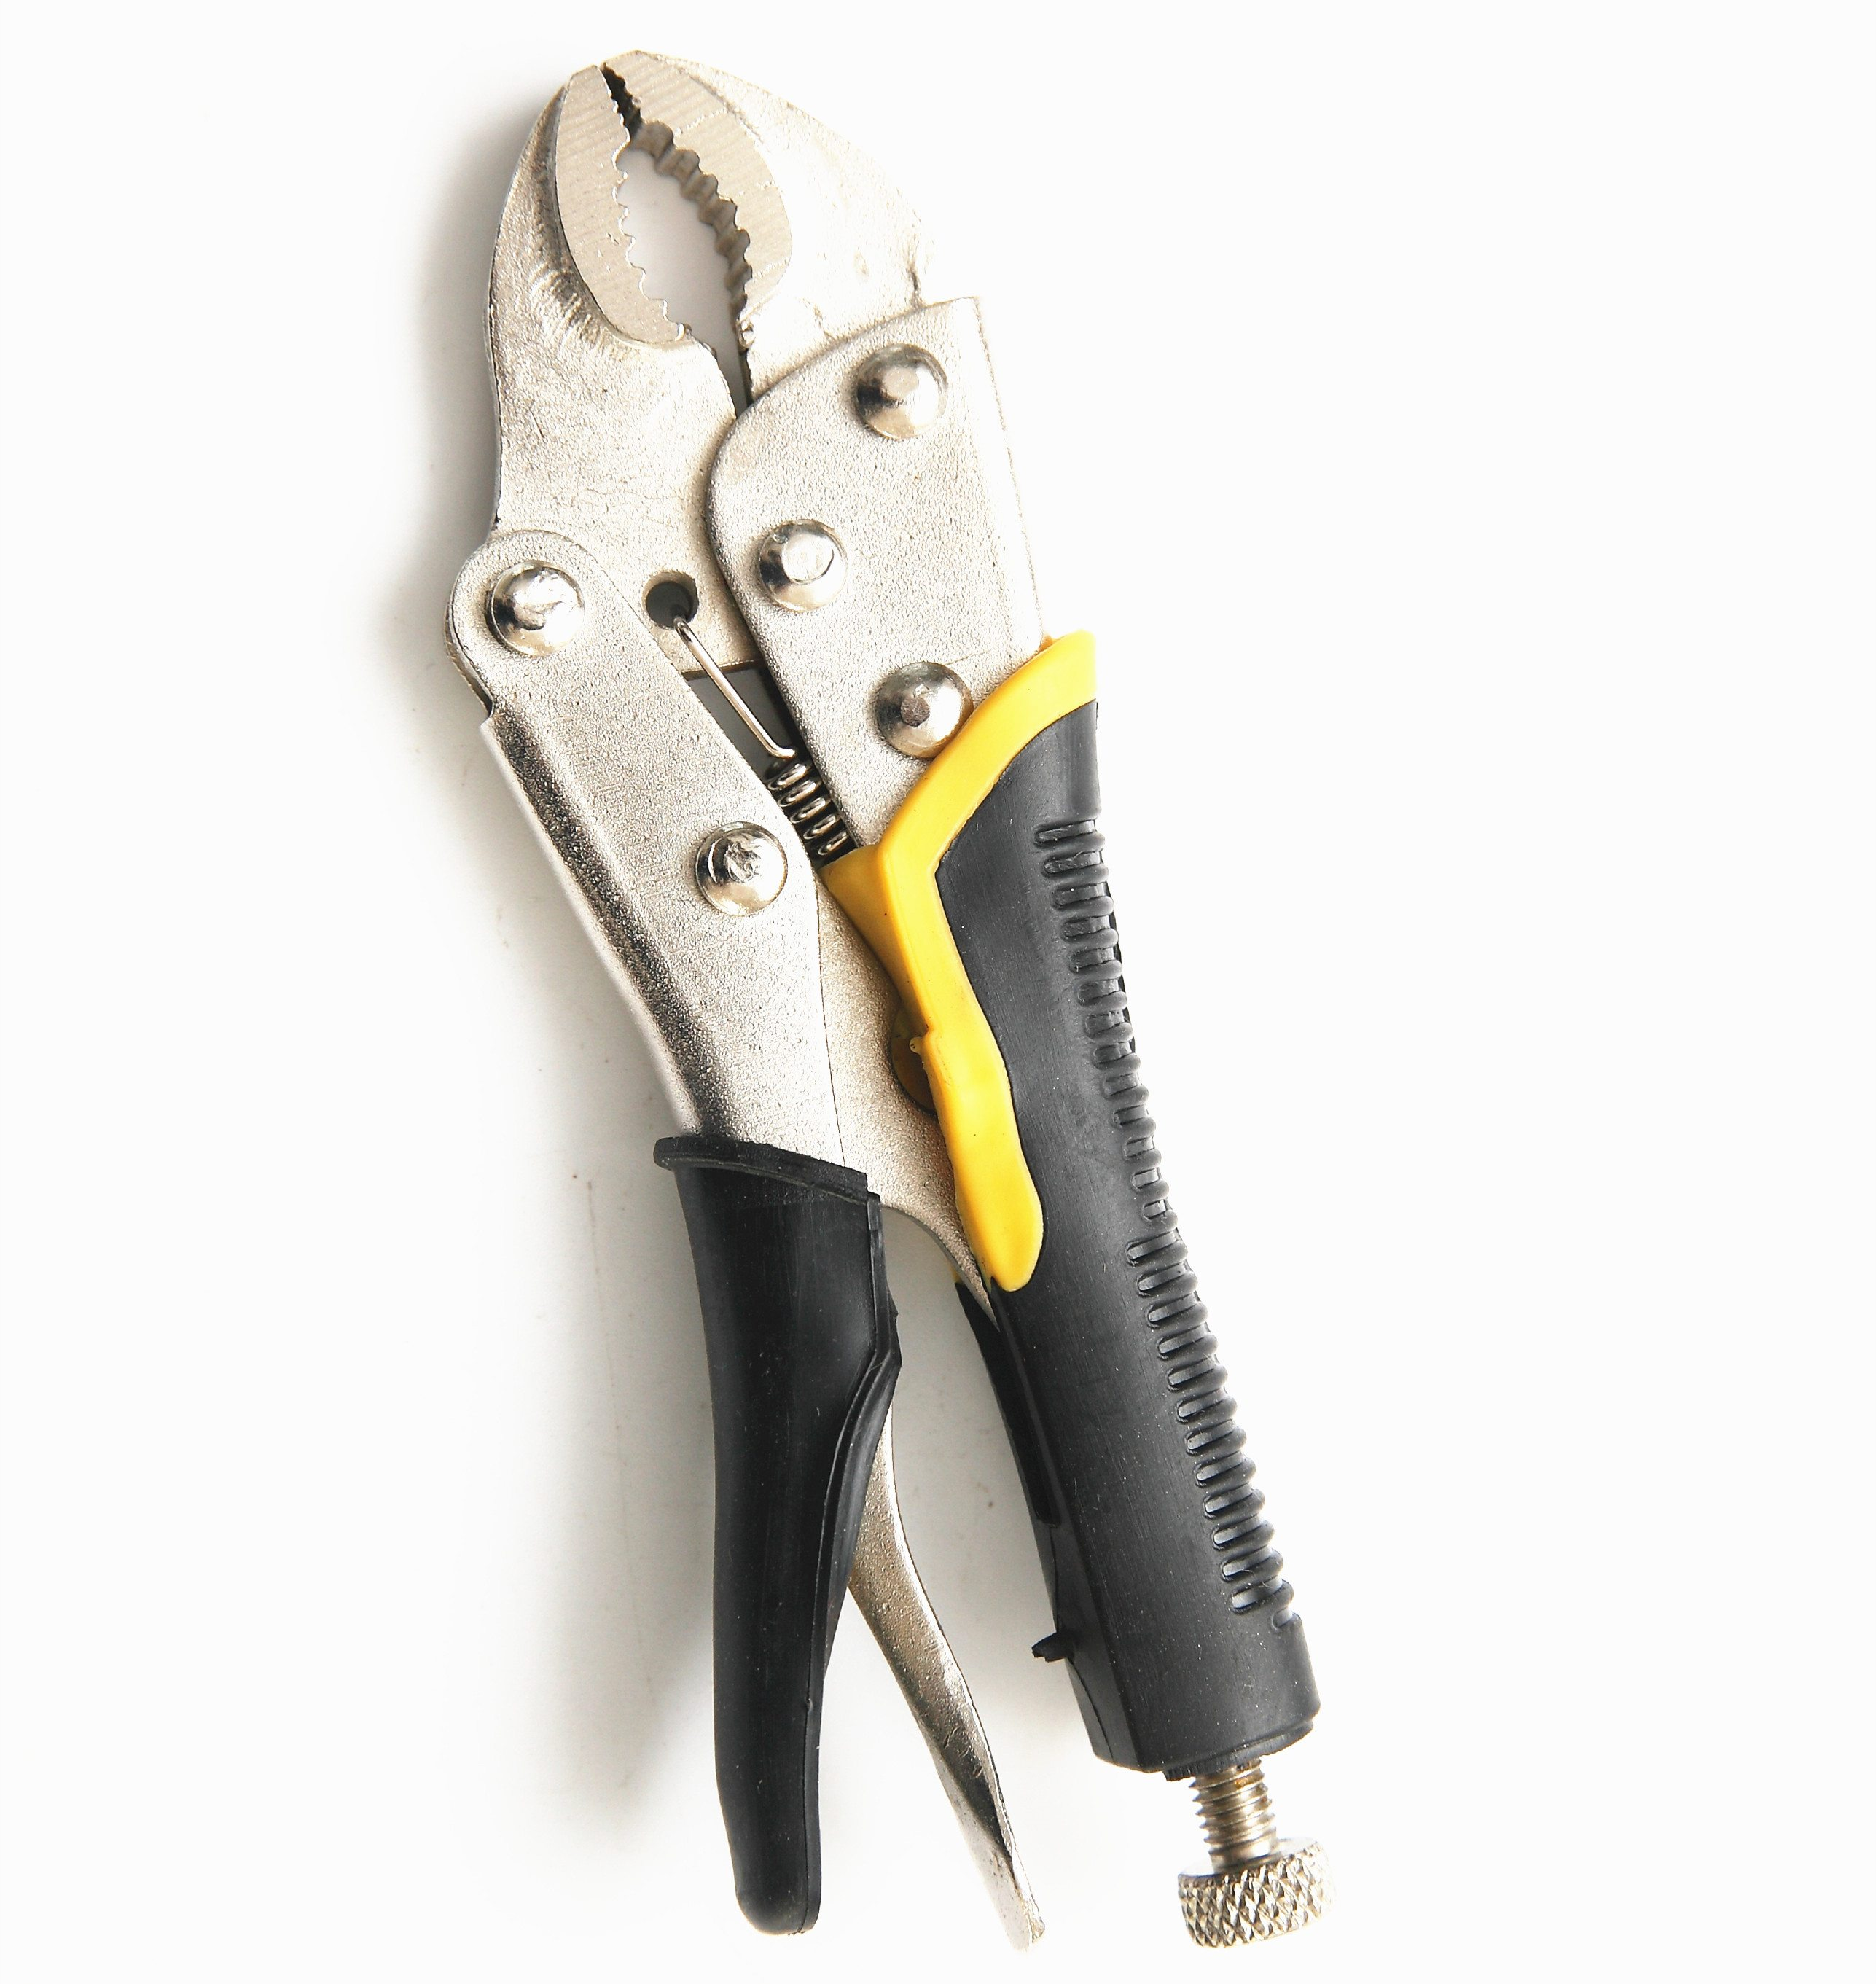 5″ Backhand Curved Jaw Locking Pliers with Jackets